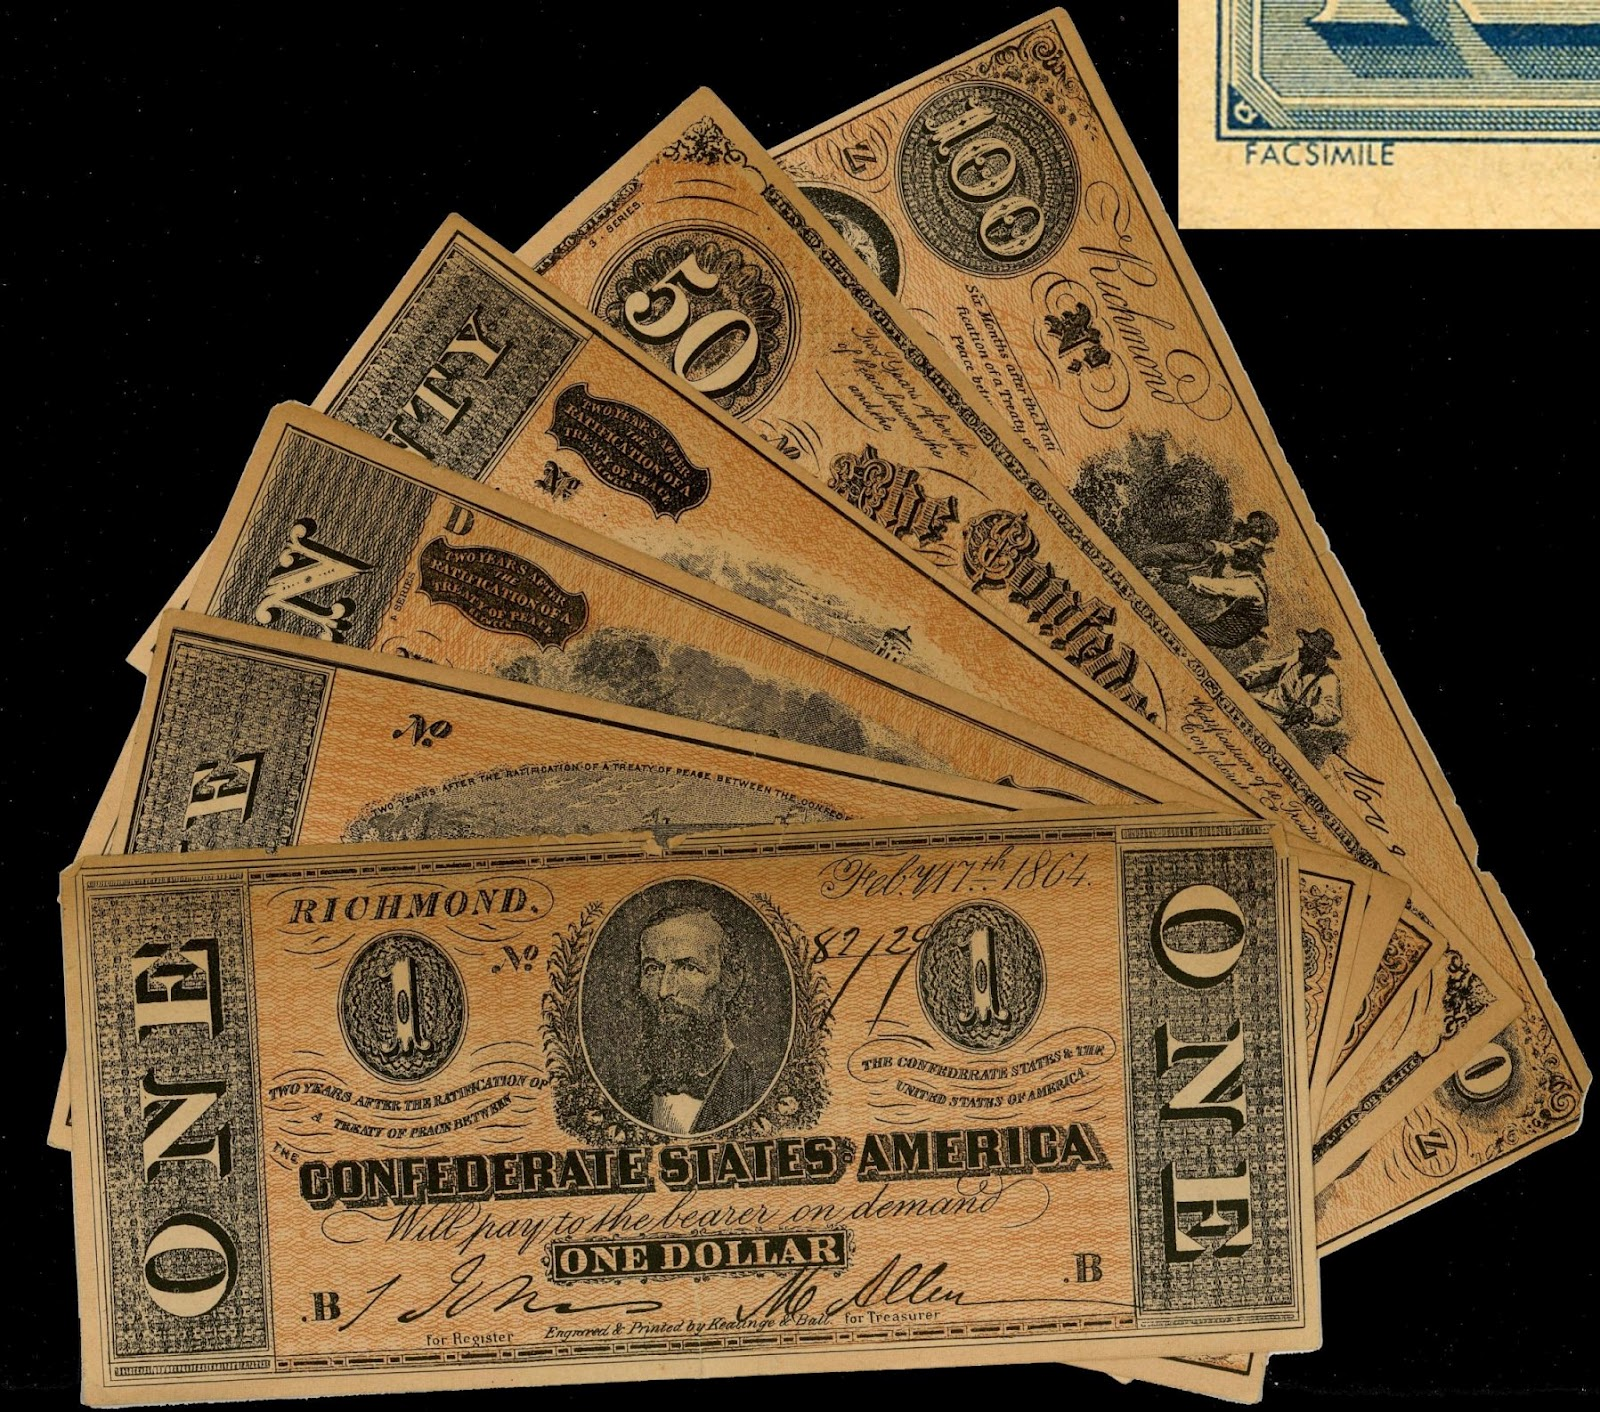 Money: Yesterday's Papers: Facsimile Confederate Money Used As